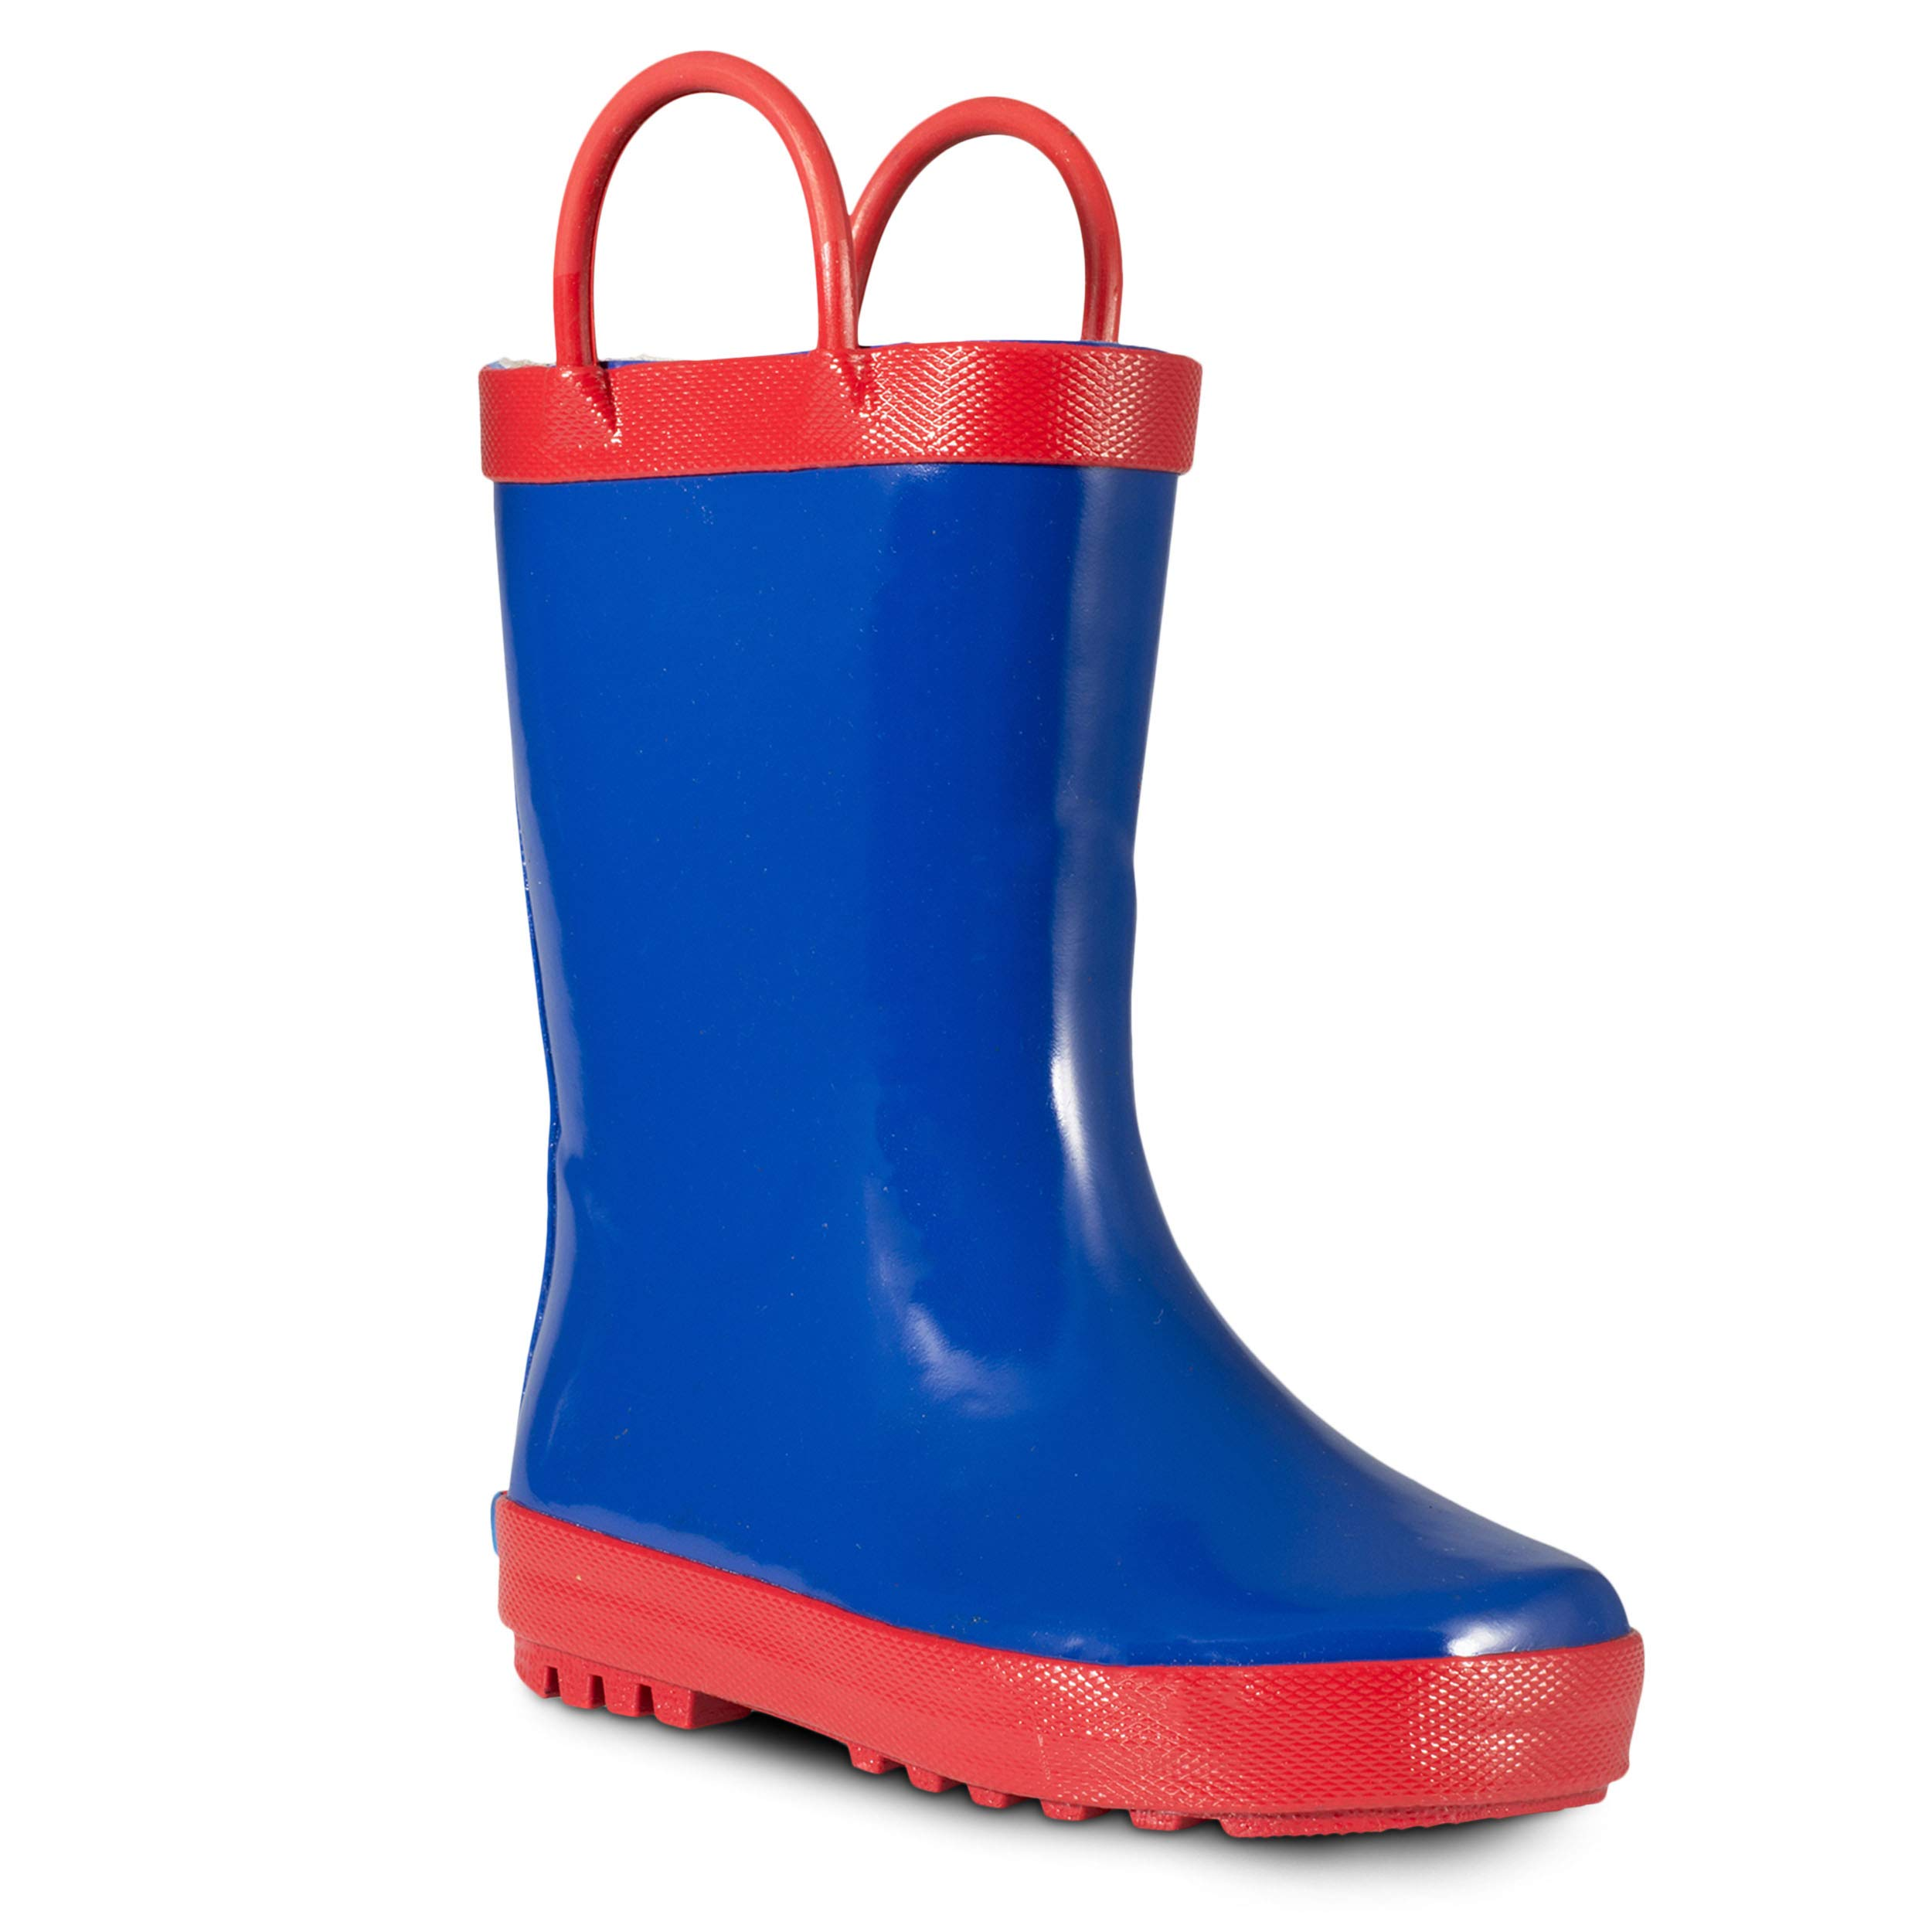 ZOOGS Children's Rubber Rain Boots for Little Kids & Toddlers, Boys & Girls